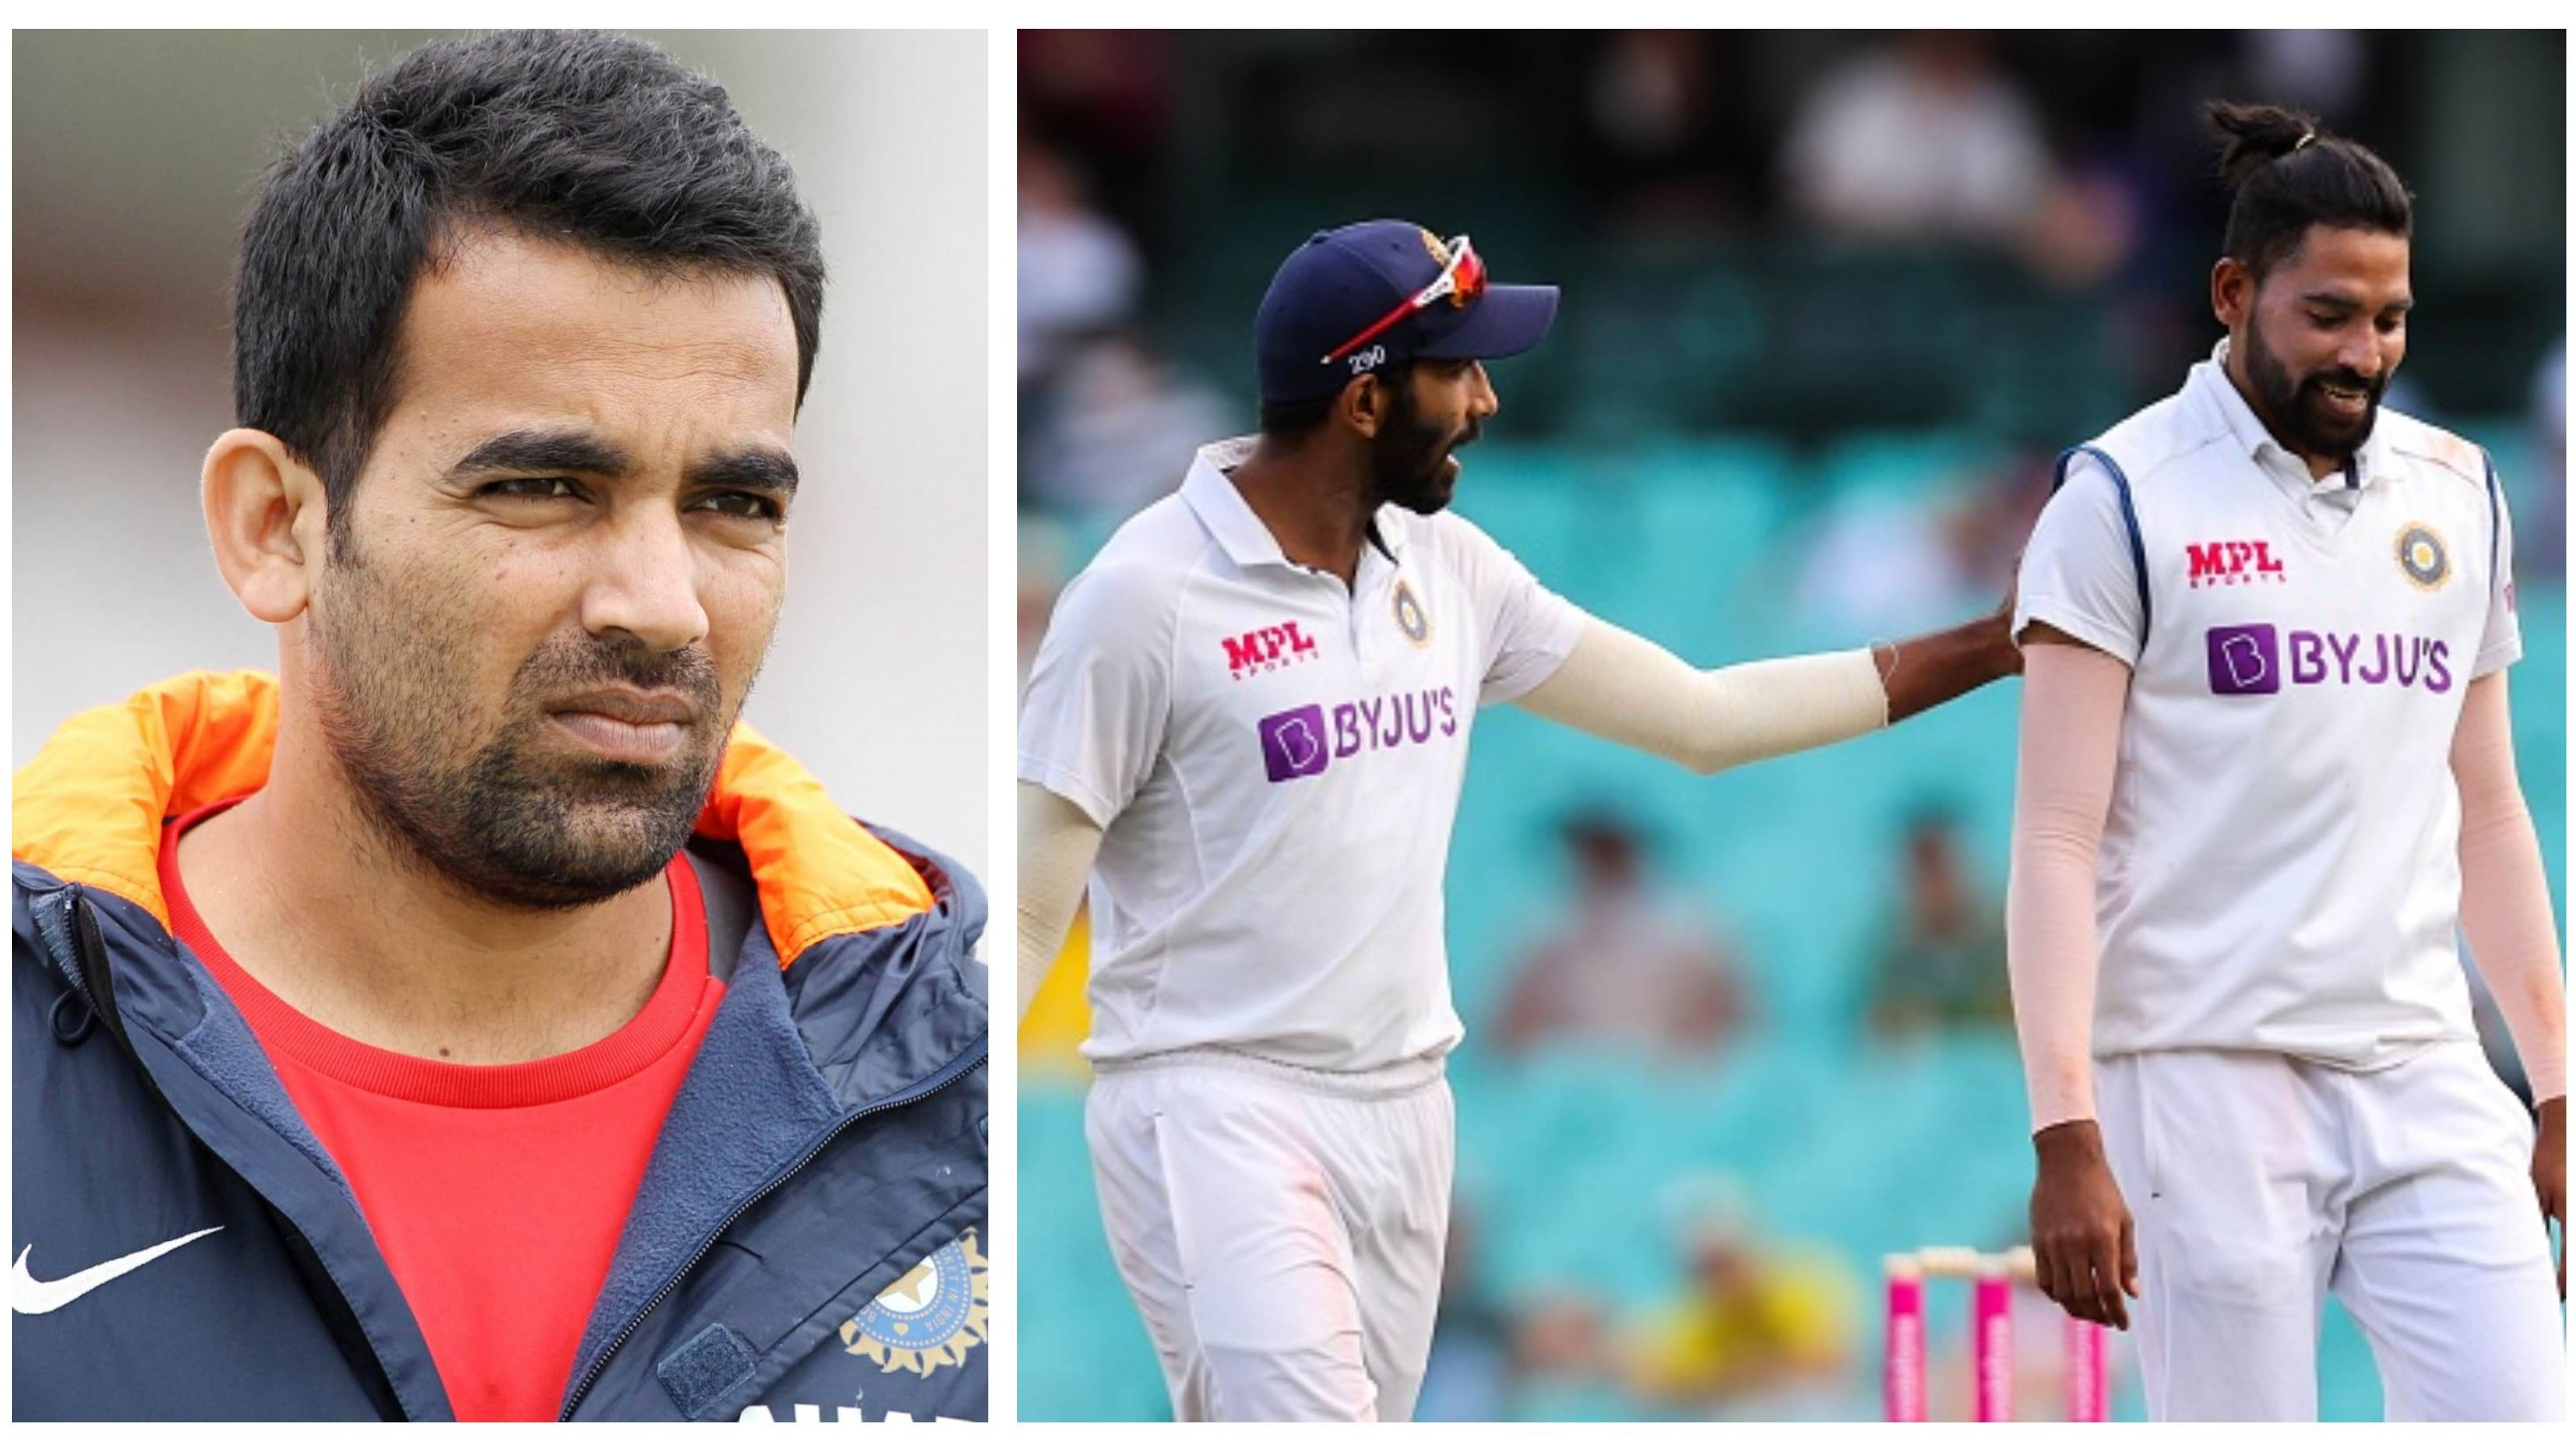 AUS v IND 2020-21: 'Heartening to see how Indian pacers have performed in this series', says Zaheer Khan